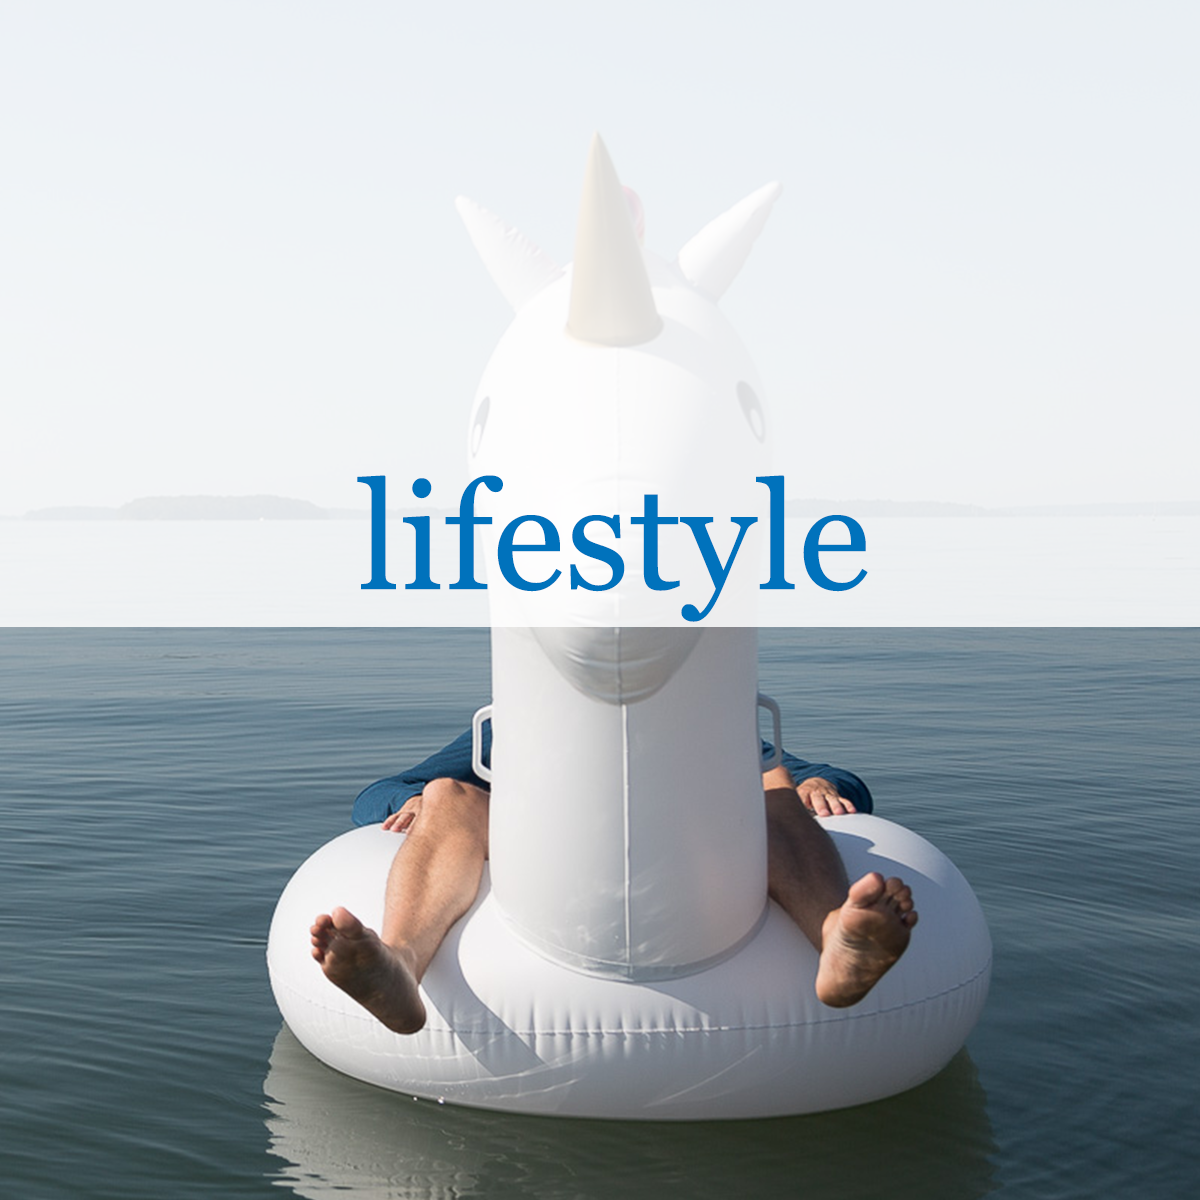 Welcome-Lifestyle-Half-White-Transparent.png